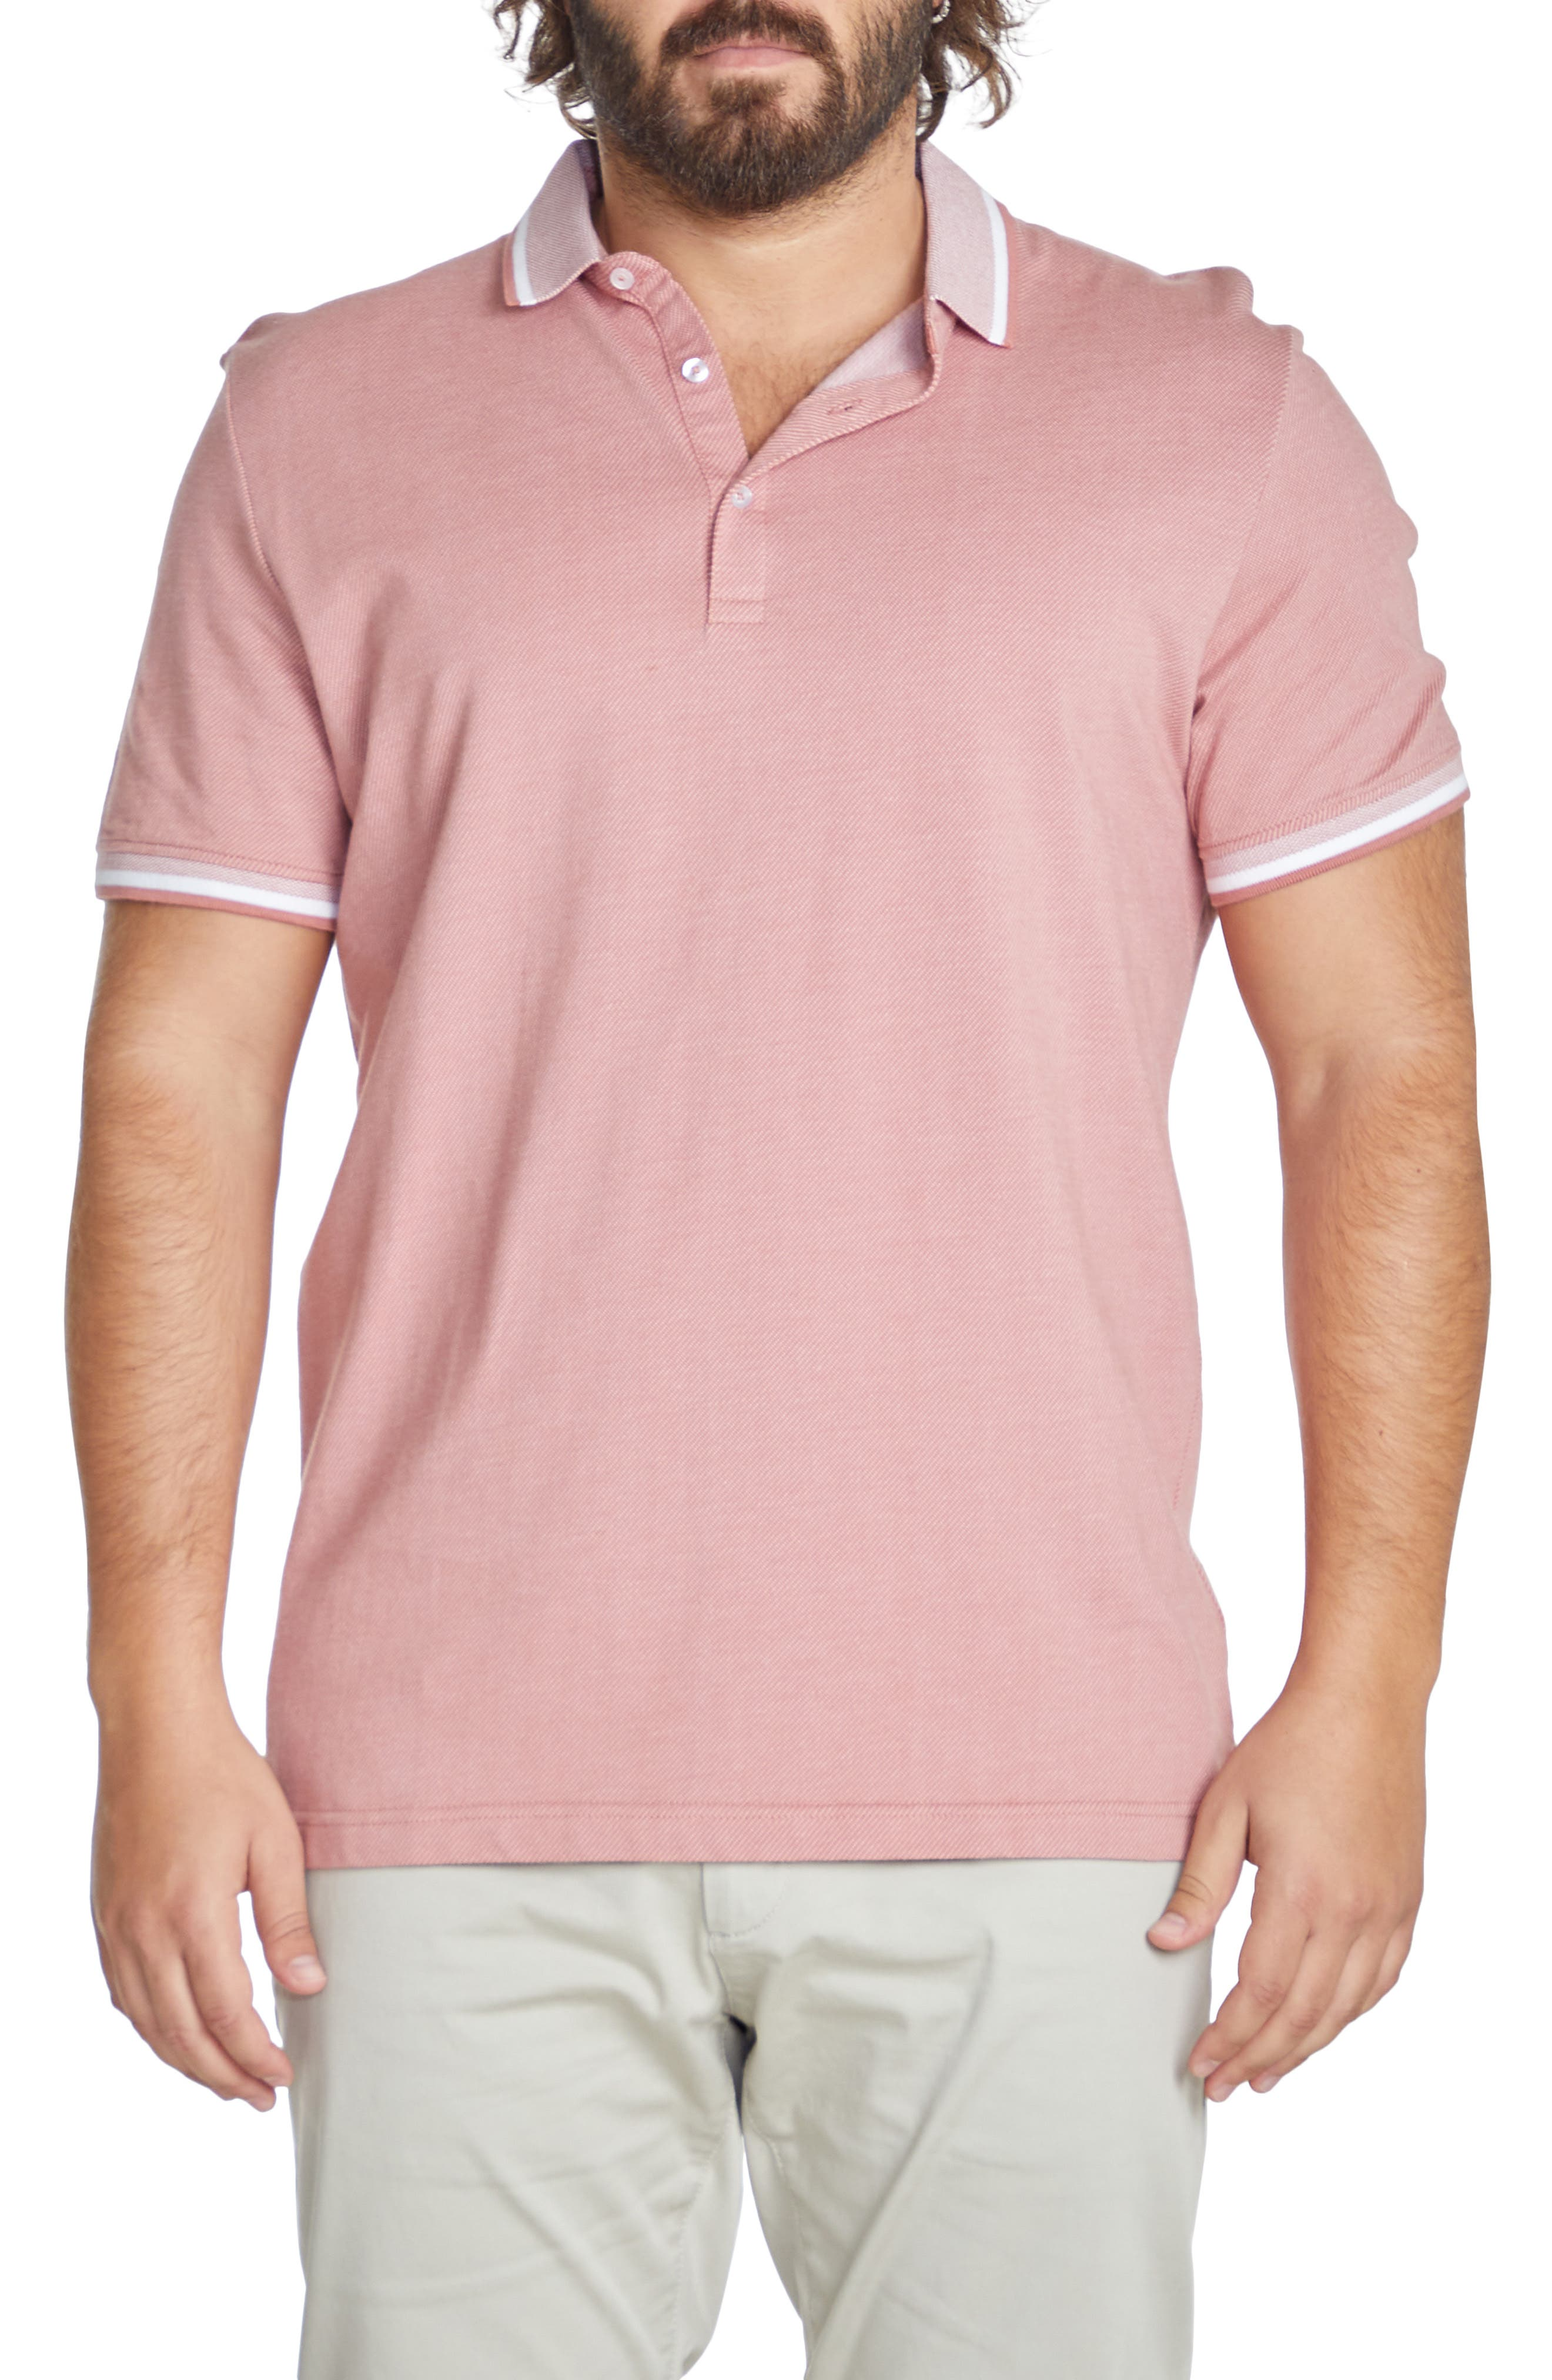 Marlow Tipped Short Sleeve Polo